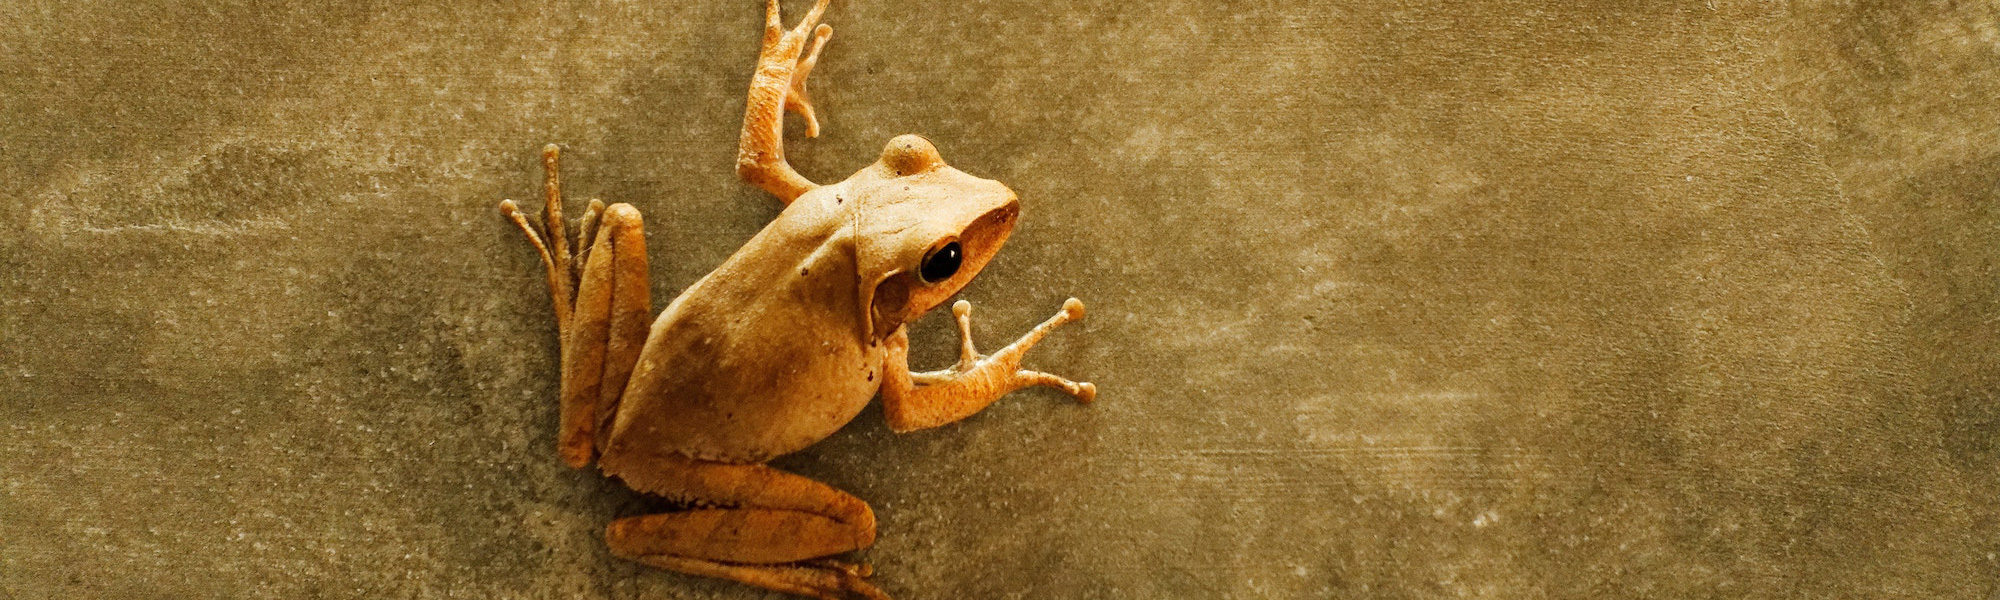 Green frog on a wall